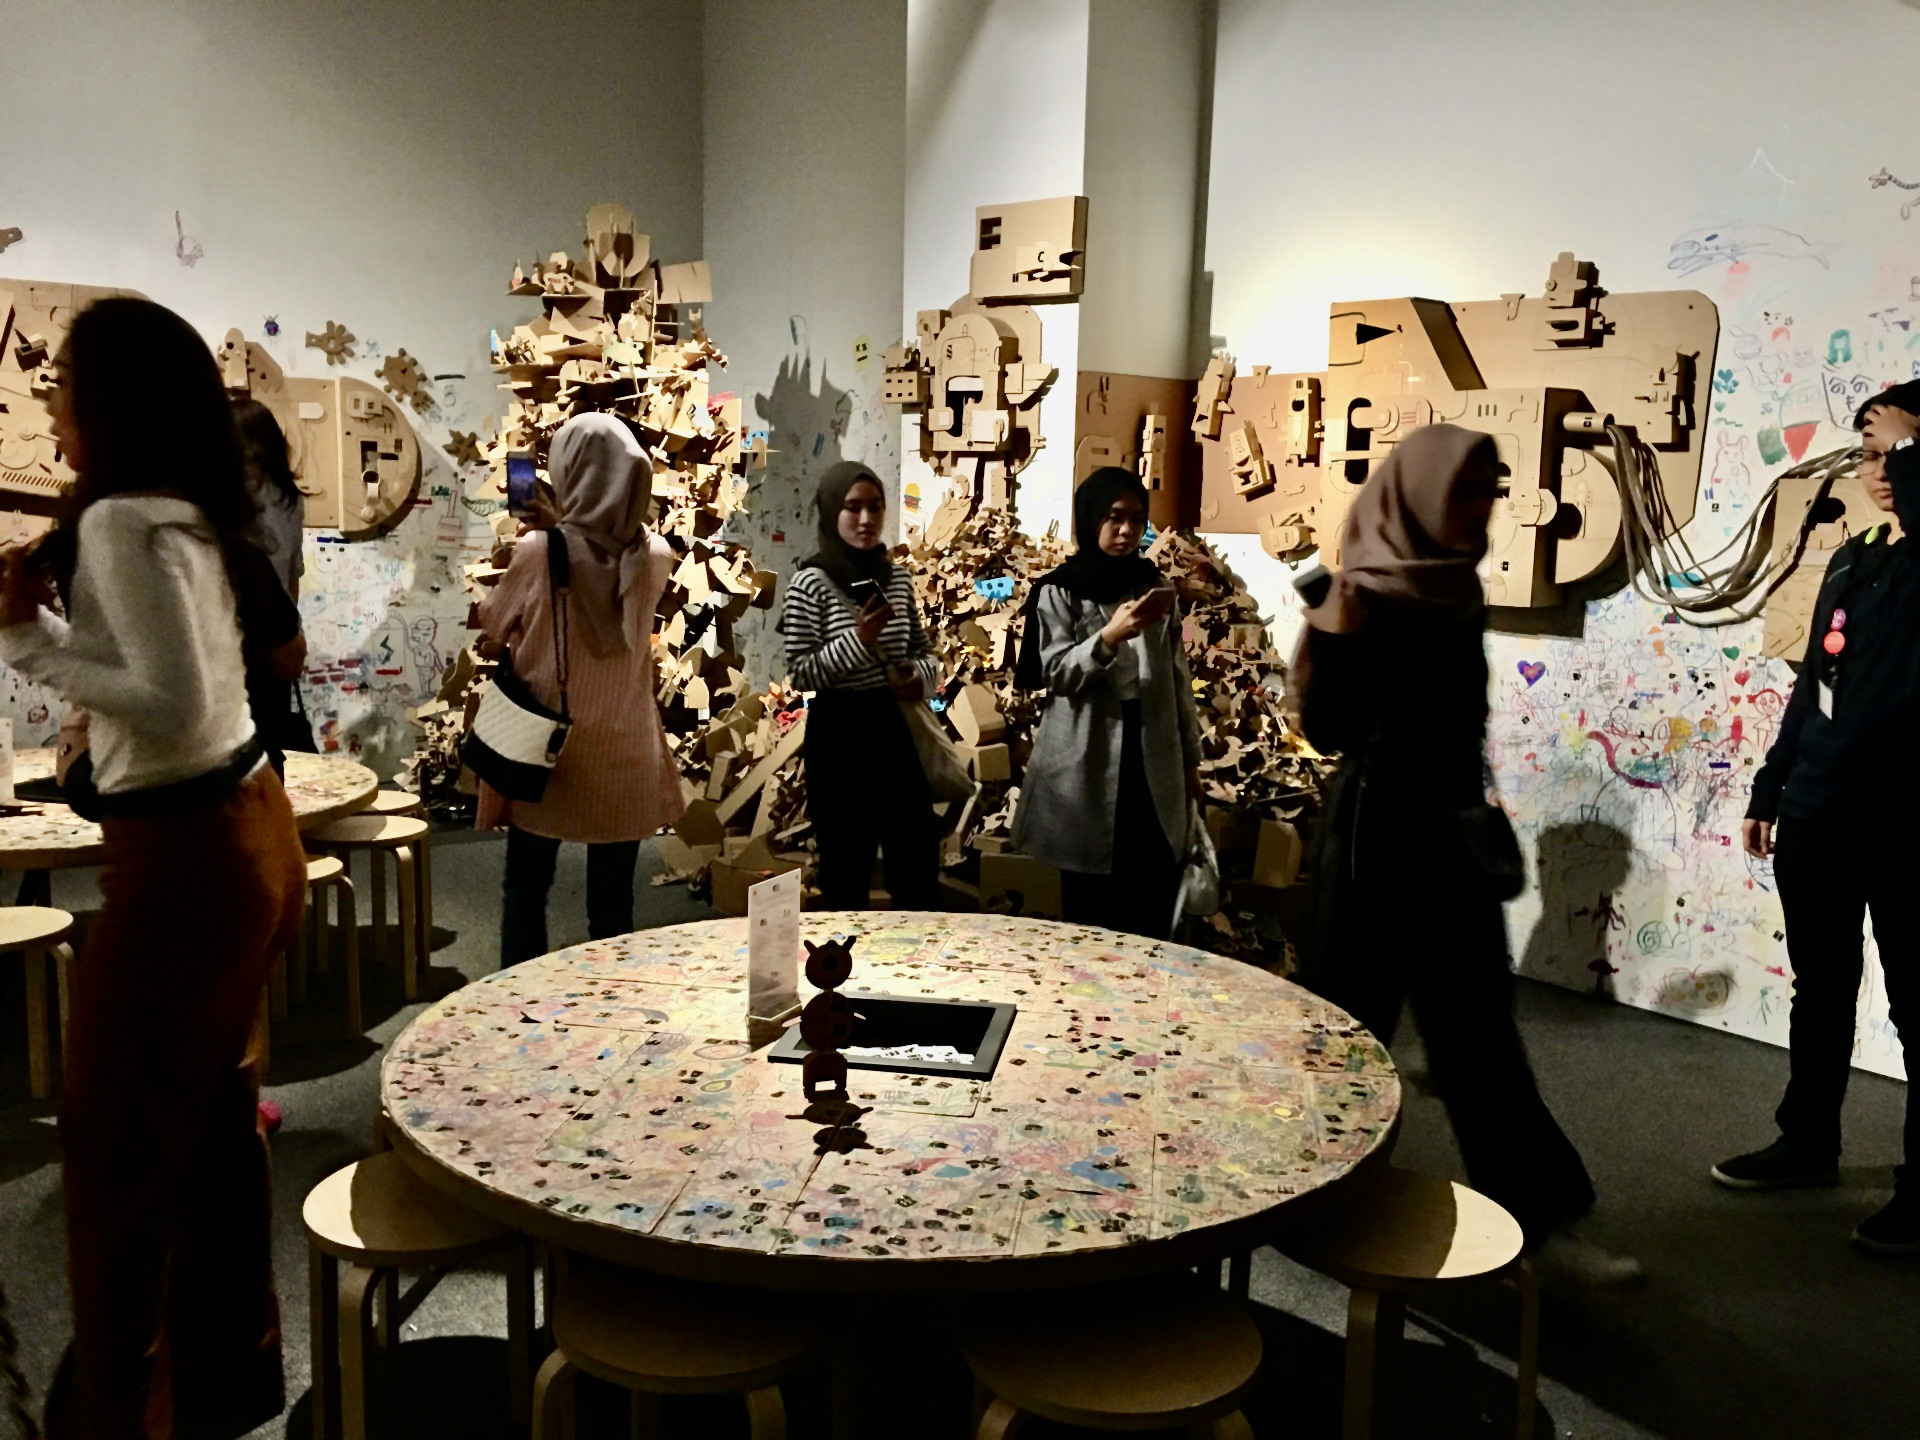 【Museums Link Asia-Pacific】Born for Art Education and Cultural Heritage: The Museum of Modern and Contemporary Art in Nusantara